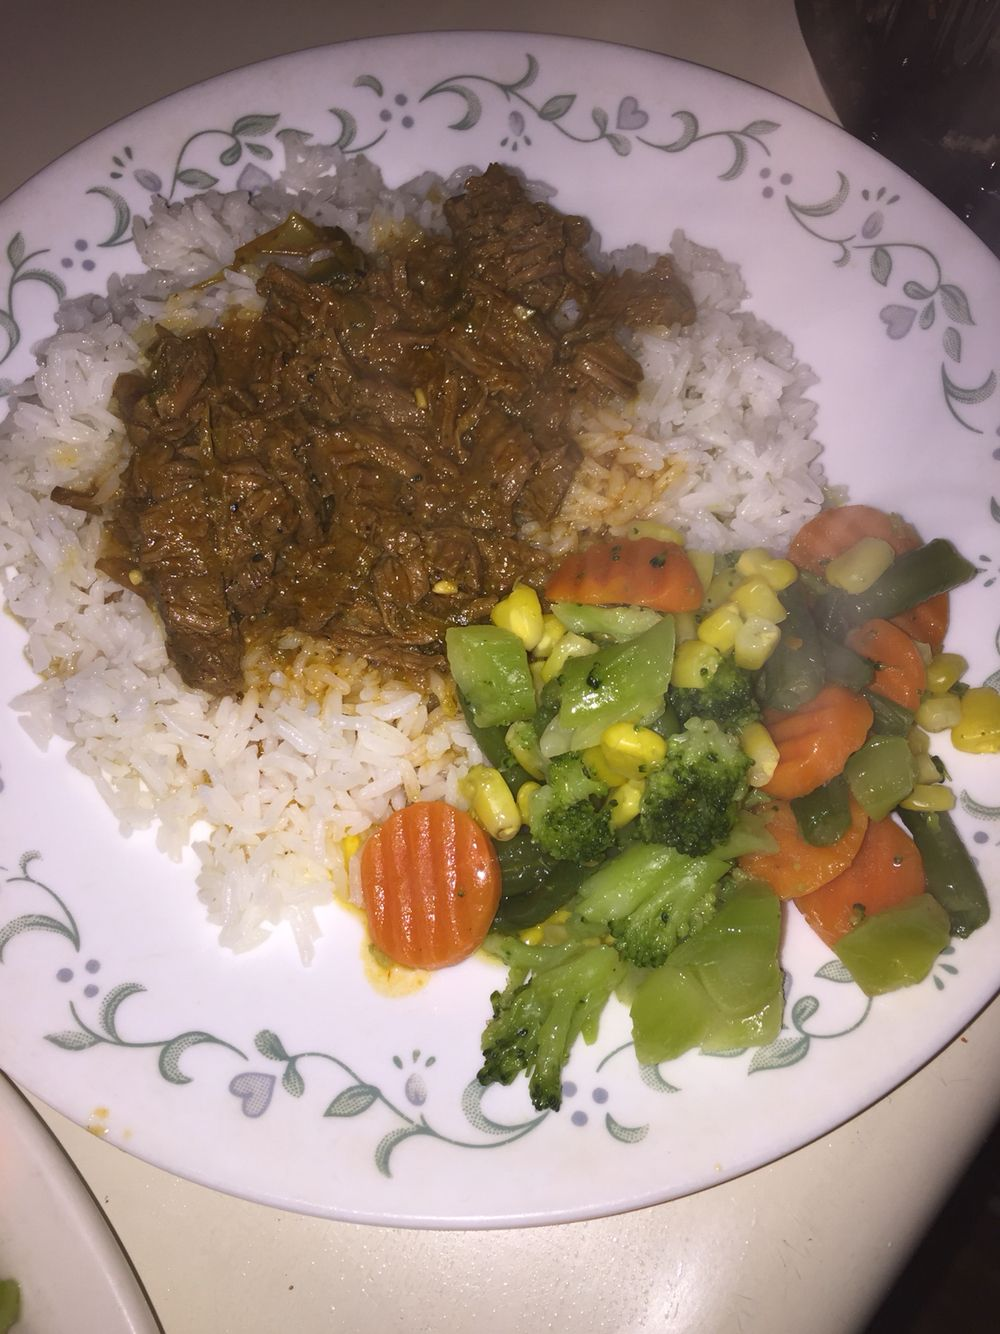 Steak in slow cooker. Topped of white rice.  Veggies on side